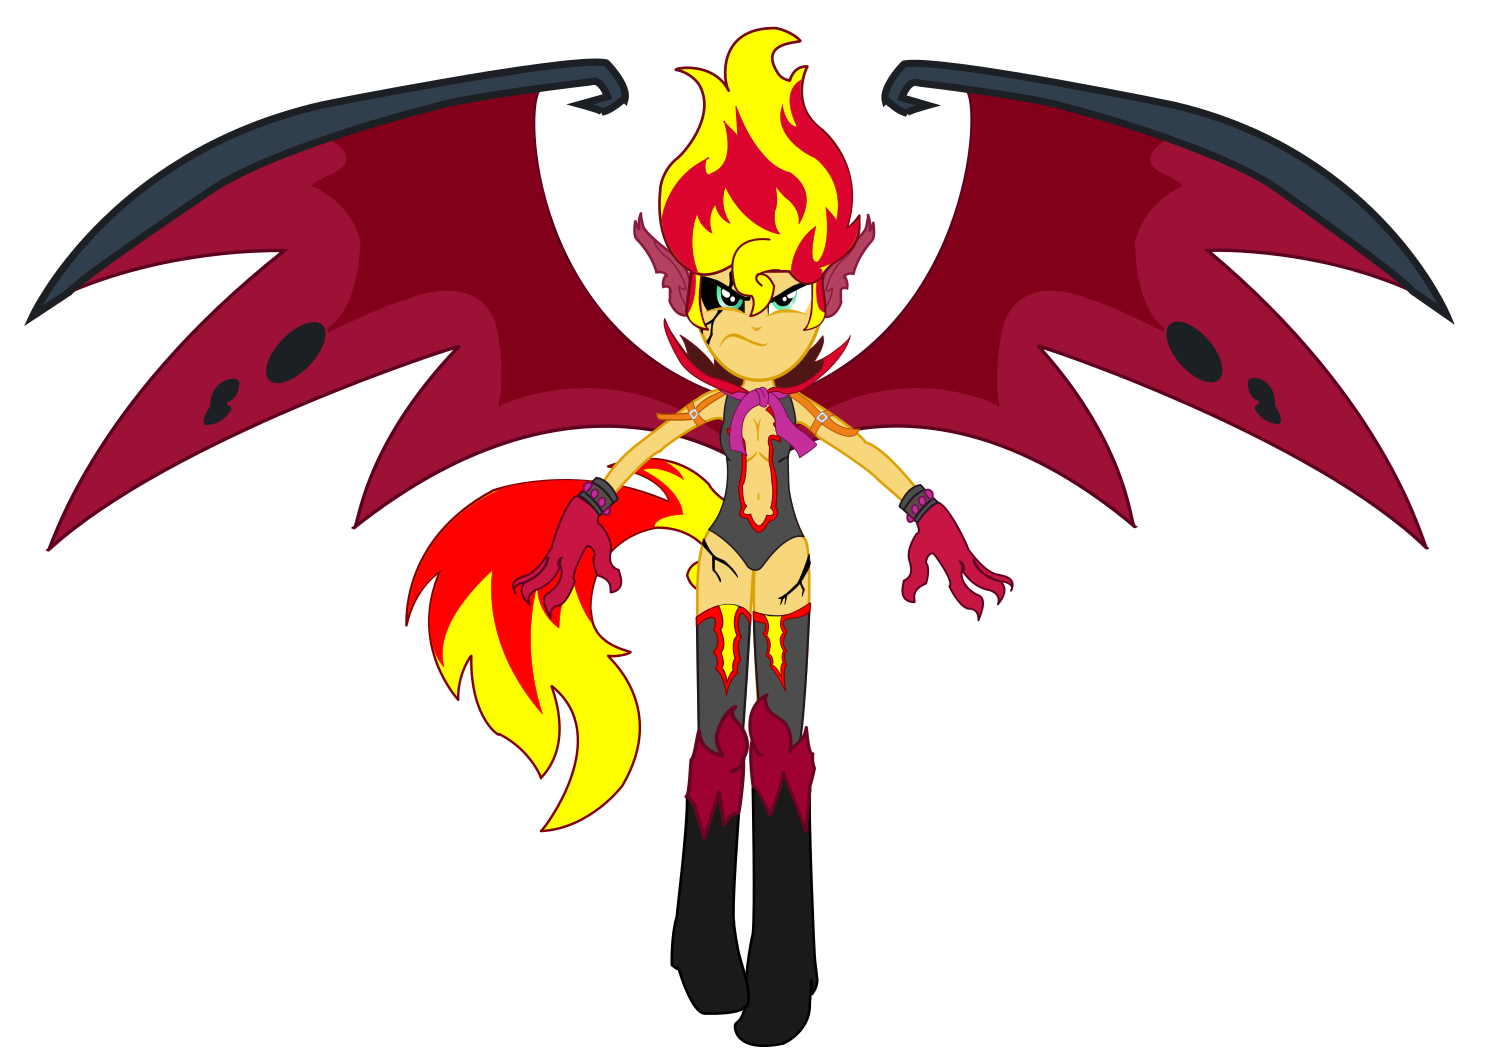 My little pony equestria girls sunset shimmer demon - photo#6